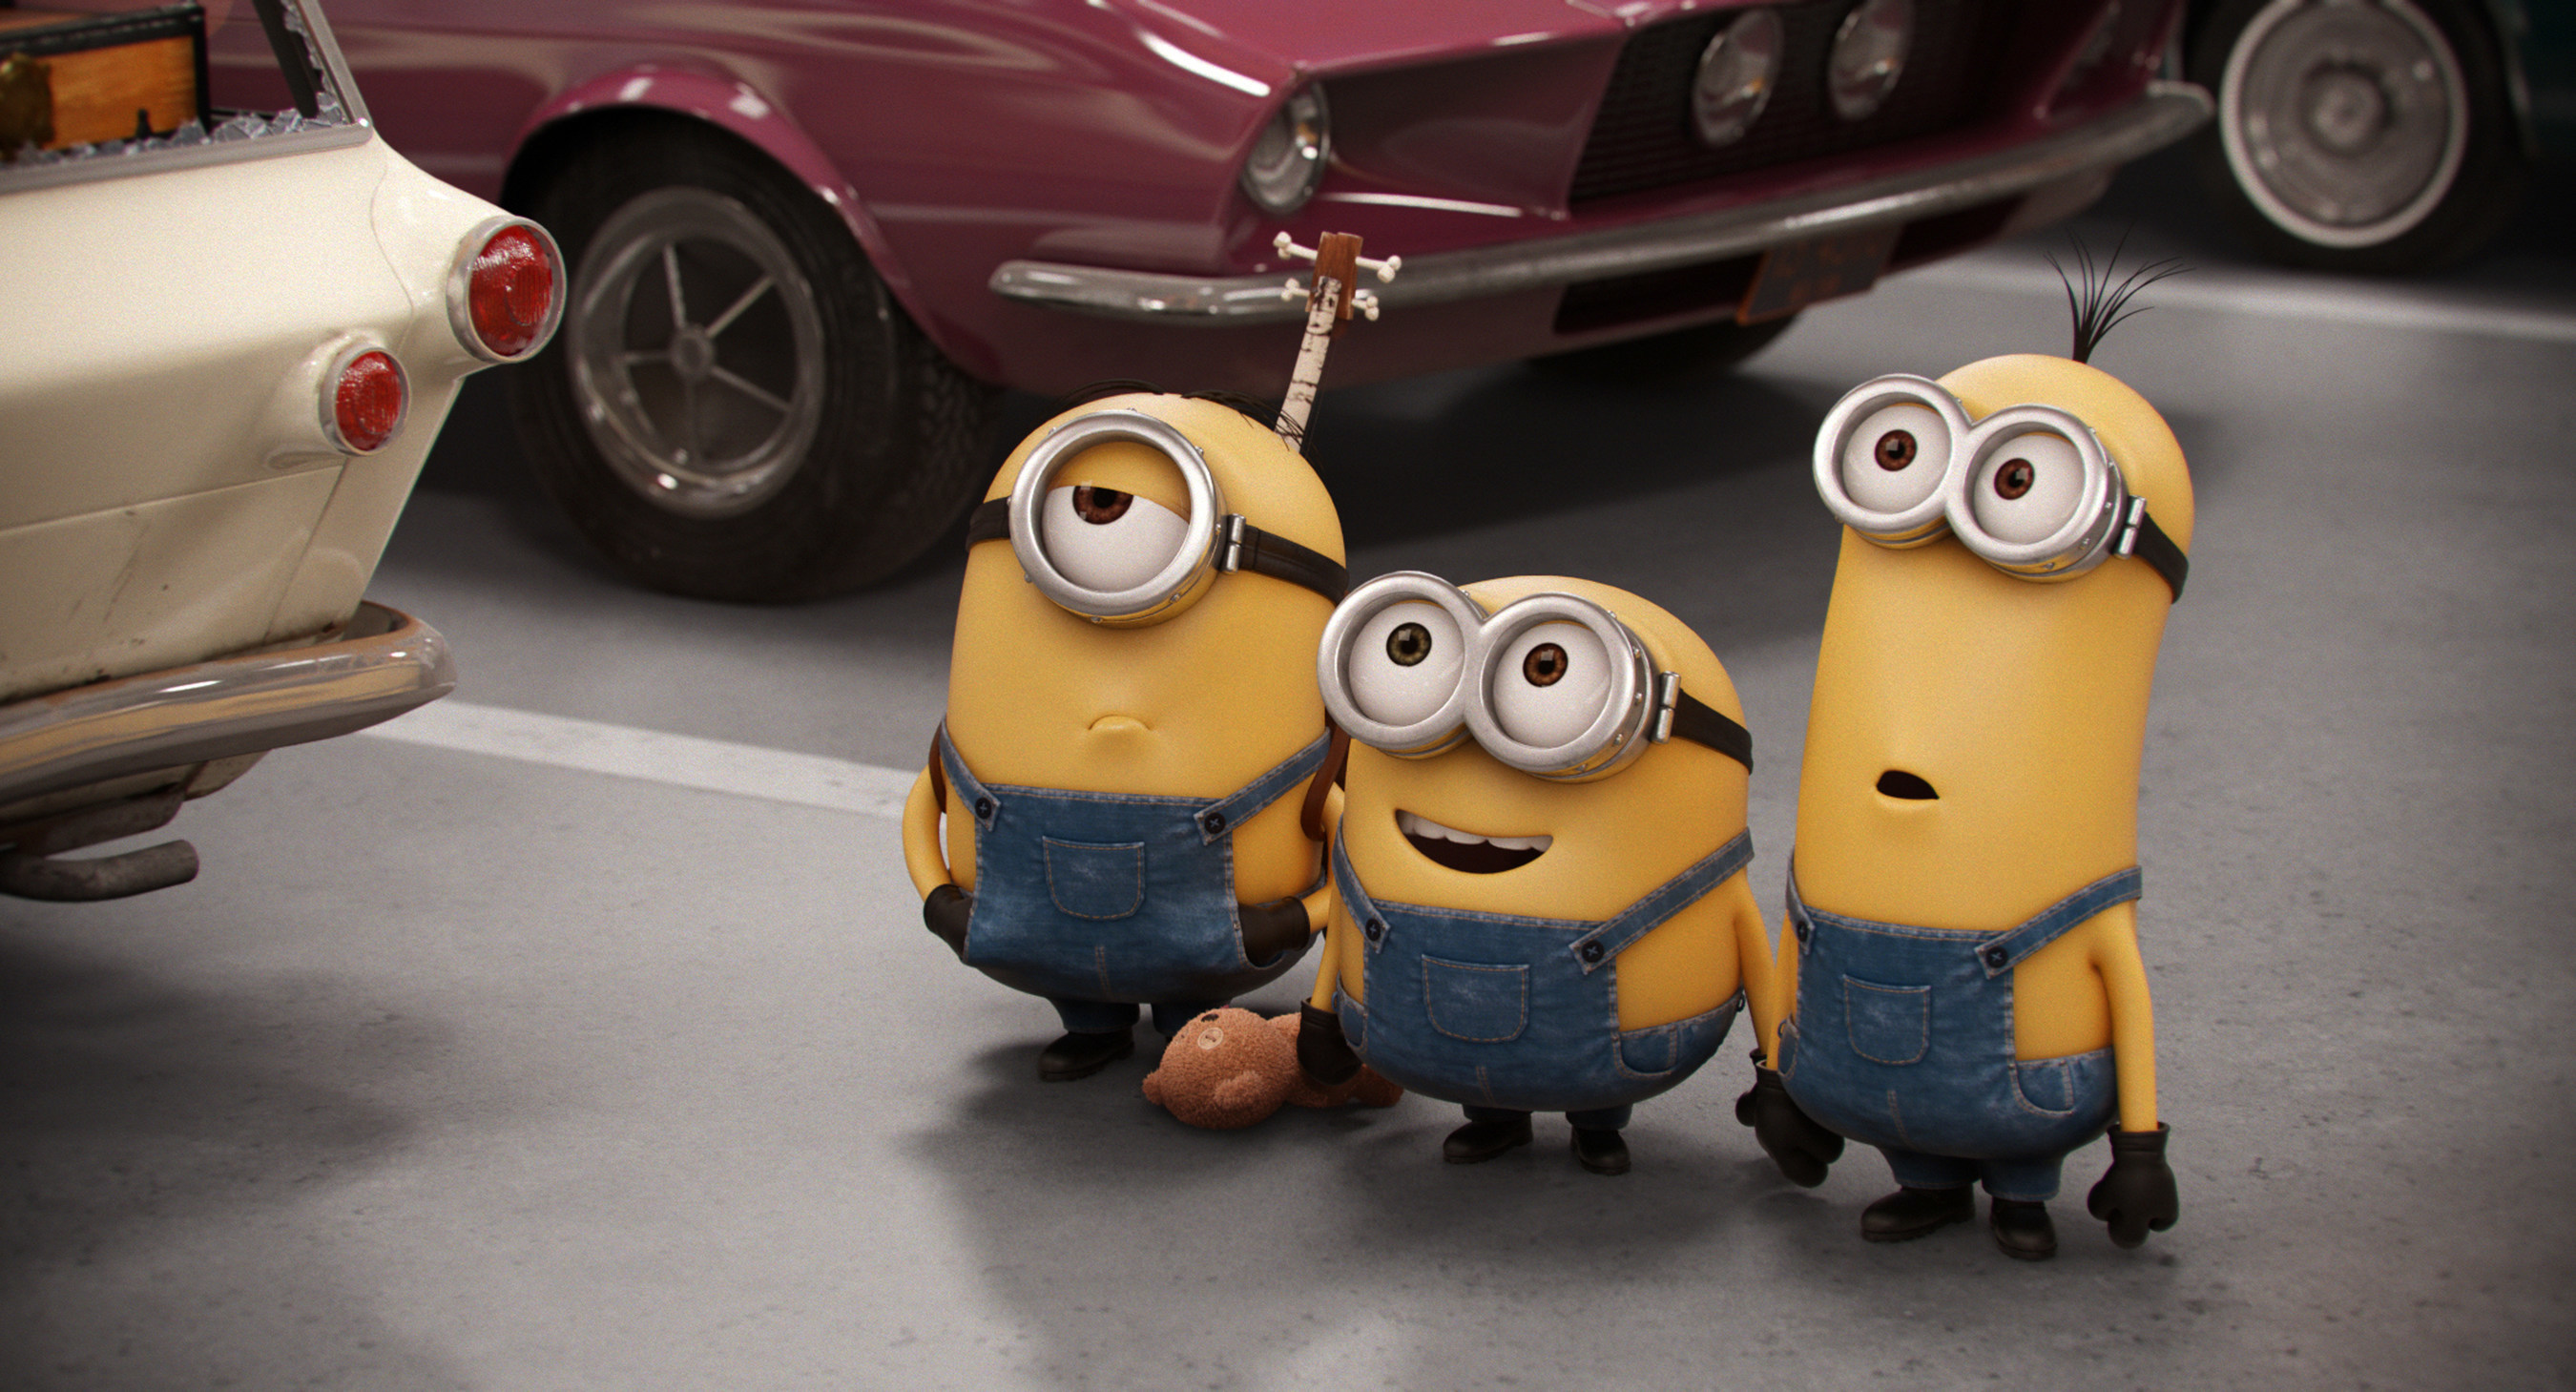 'Minions' Take Miami At Homestead-Miami Speedway During Ford Championship Weekend